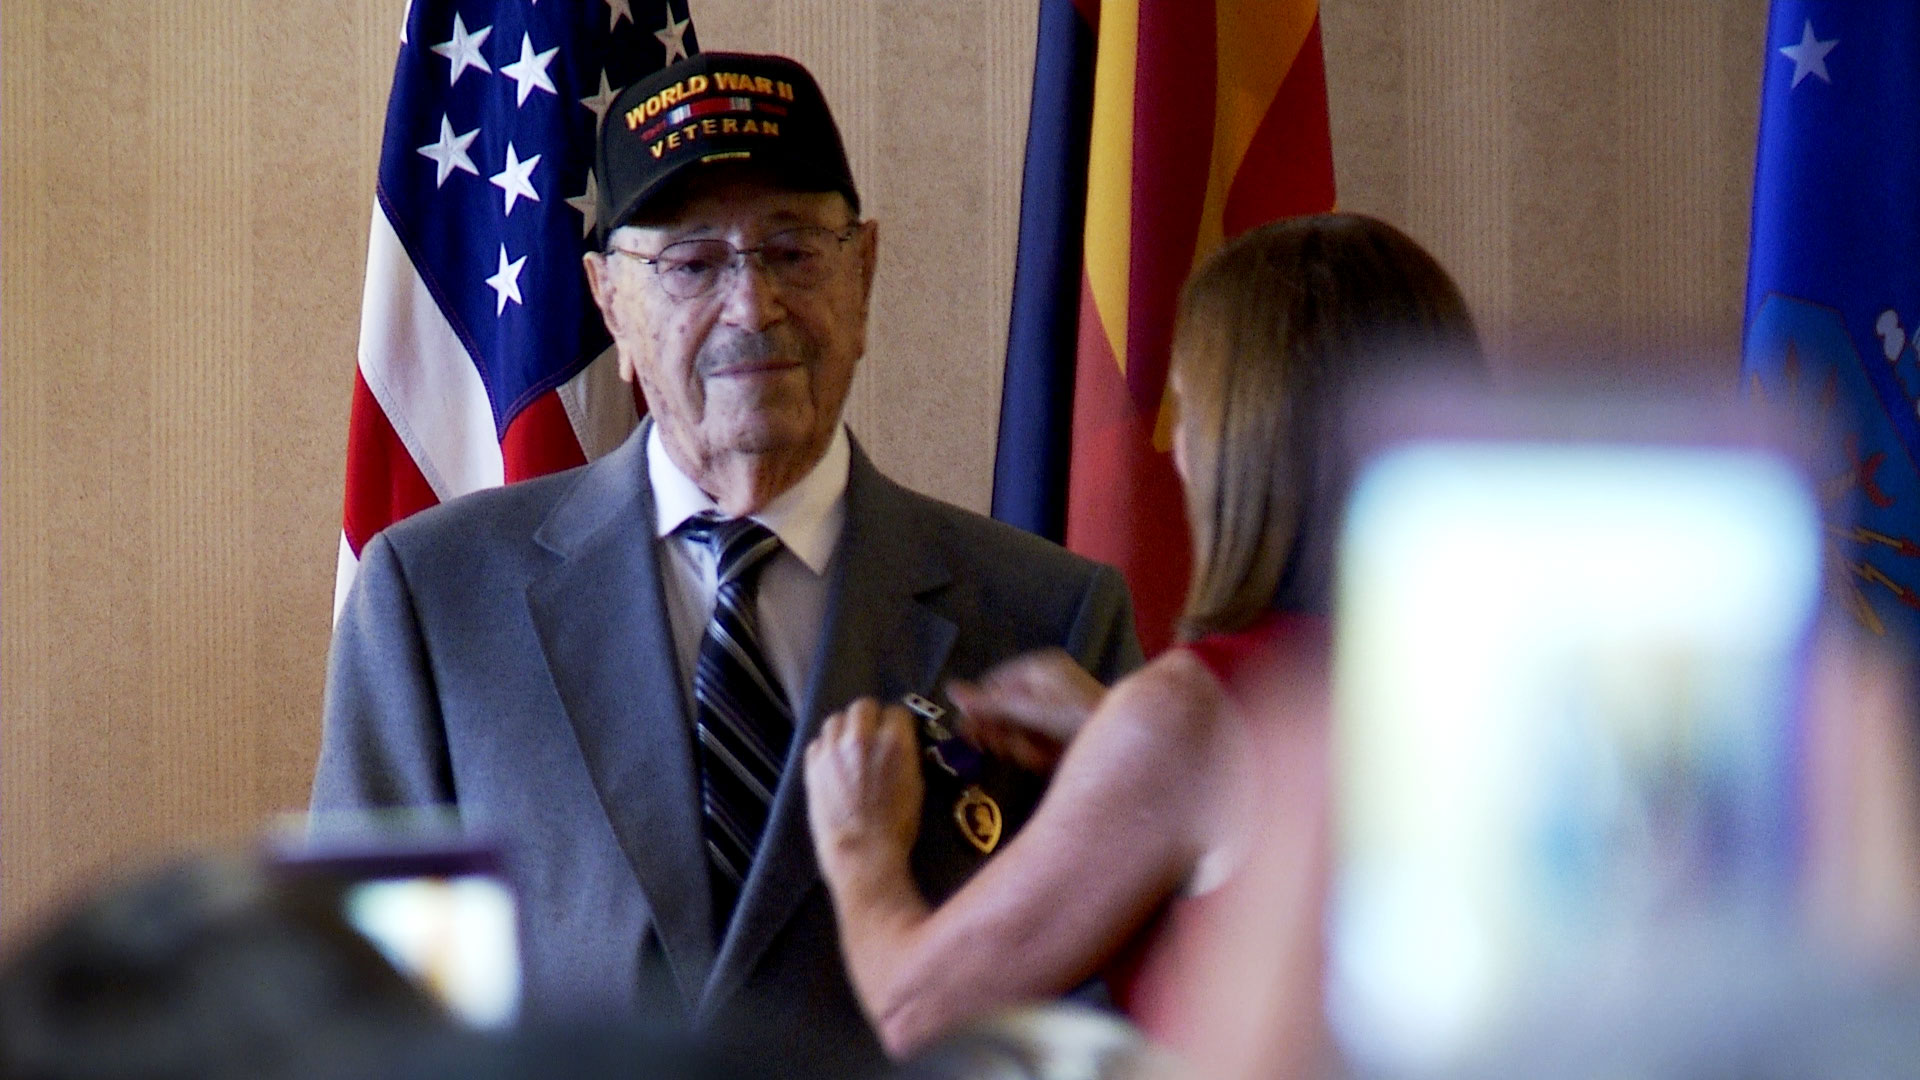 World War II veteran Walter Ram is presented with a Purple Heart with Oak Leaf Cluster by Sen. Martha McSally during a ceremony at Davis-Monthan Air Force Base on August 20, 2019.